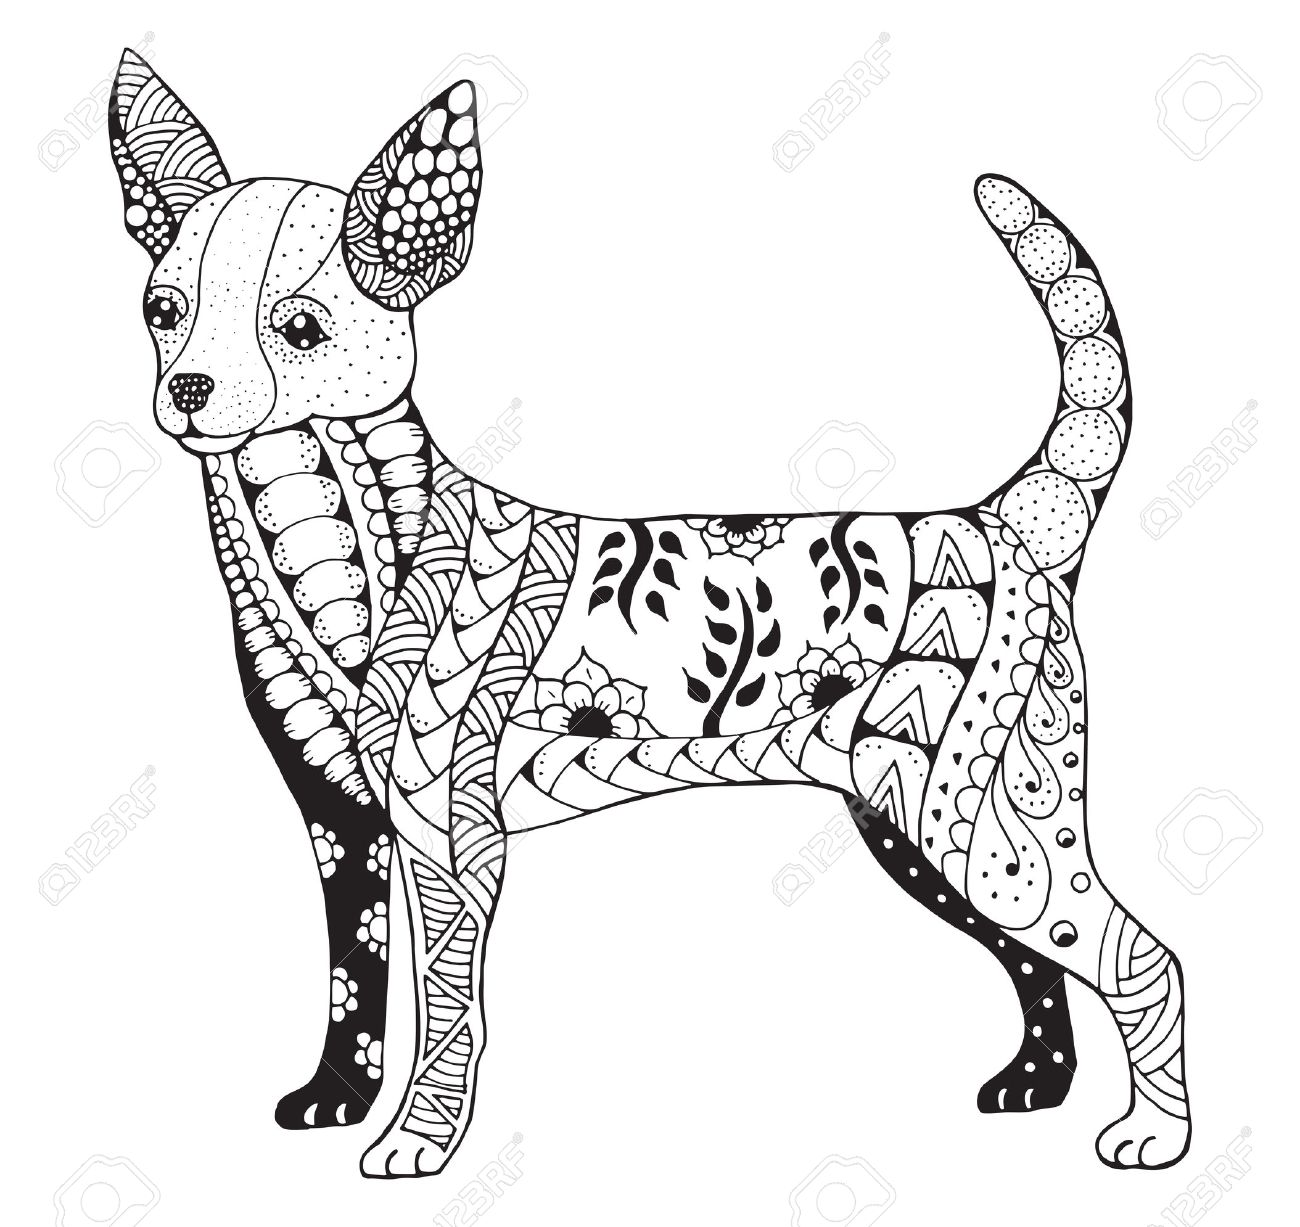 Chihuahua Dog Drawing at GetDrawings.com   Free for personal use ...